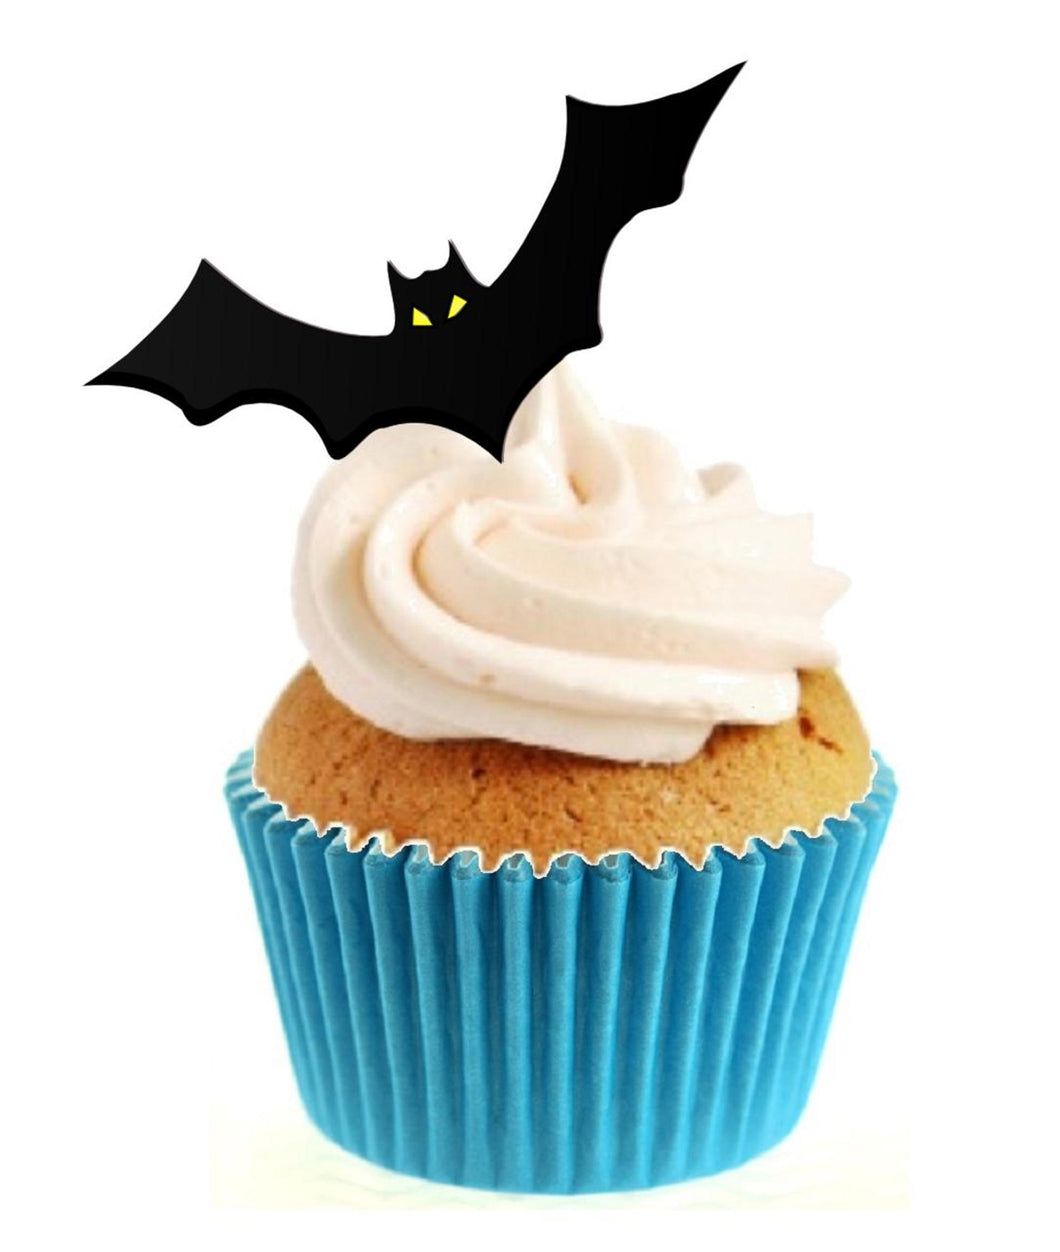 Bat Silhouette Stand Up Cake Toppers (12 pack)  Pack contains 12 images printed onto premium wafer card